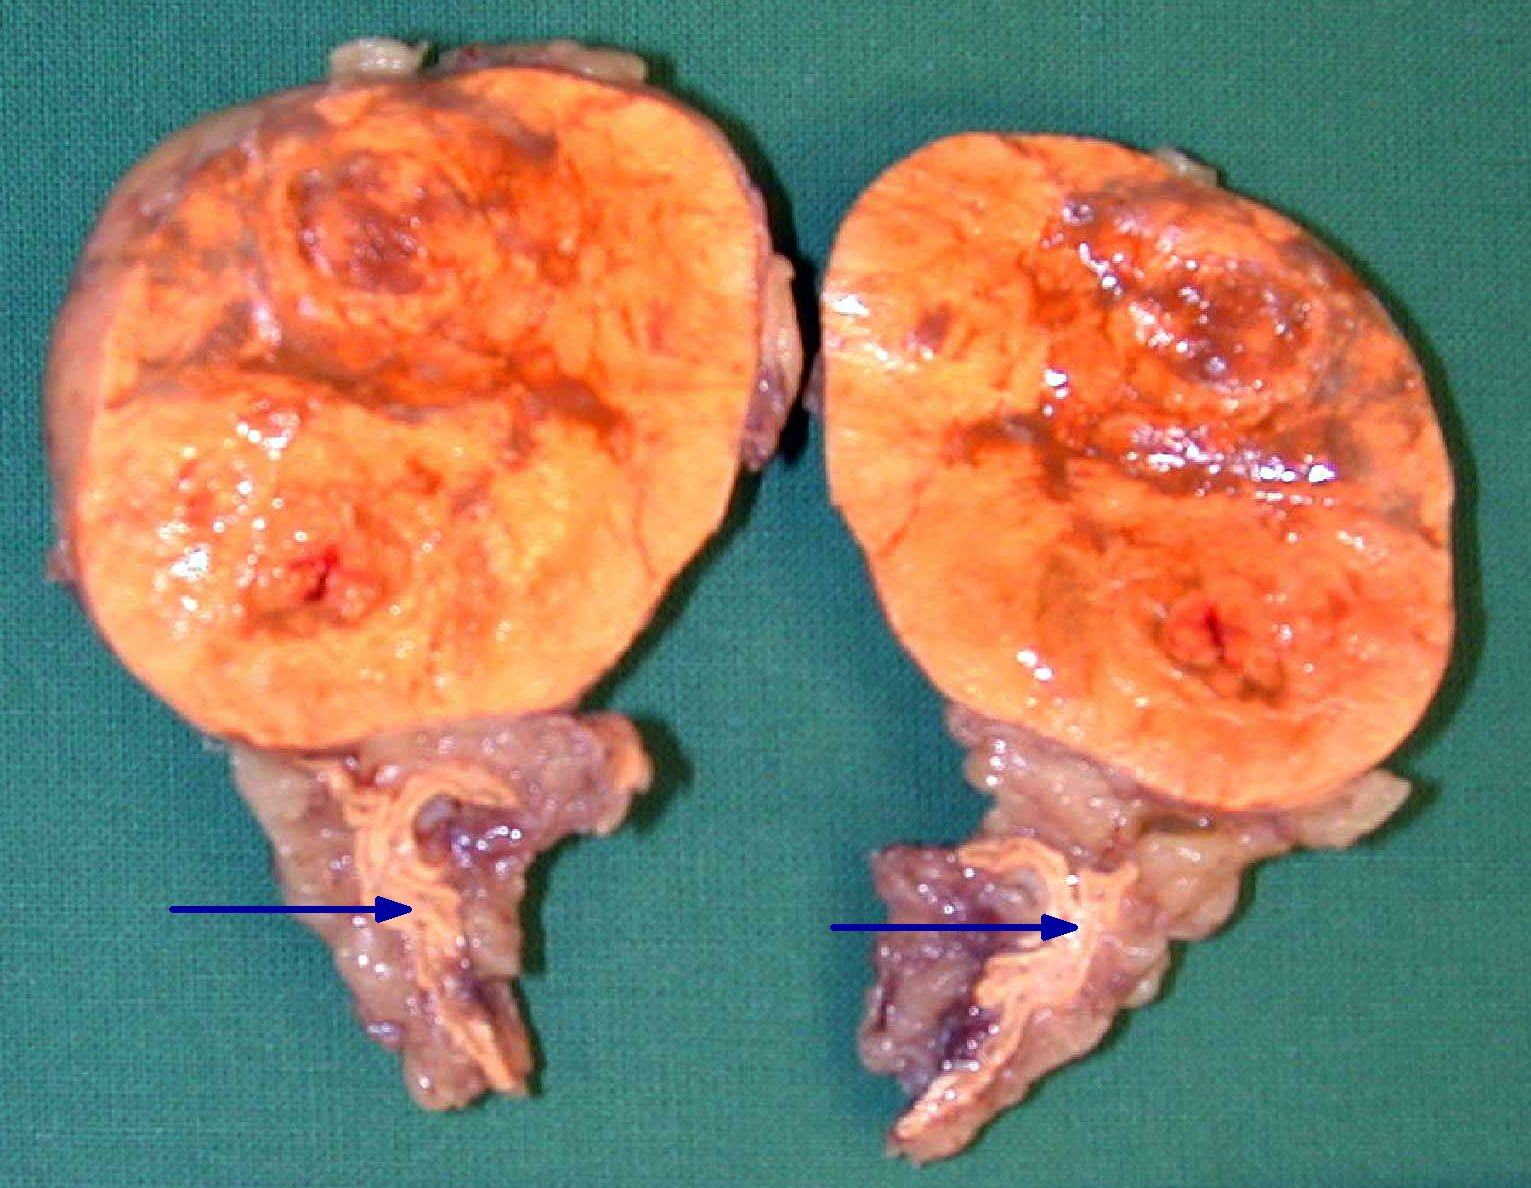 Right Adrenal Adenoma with Washout - Adrenal Case Studies